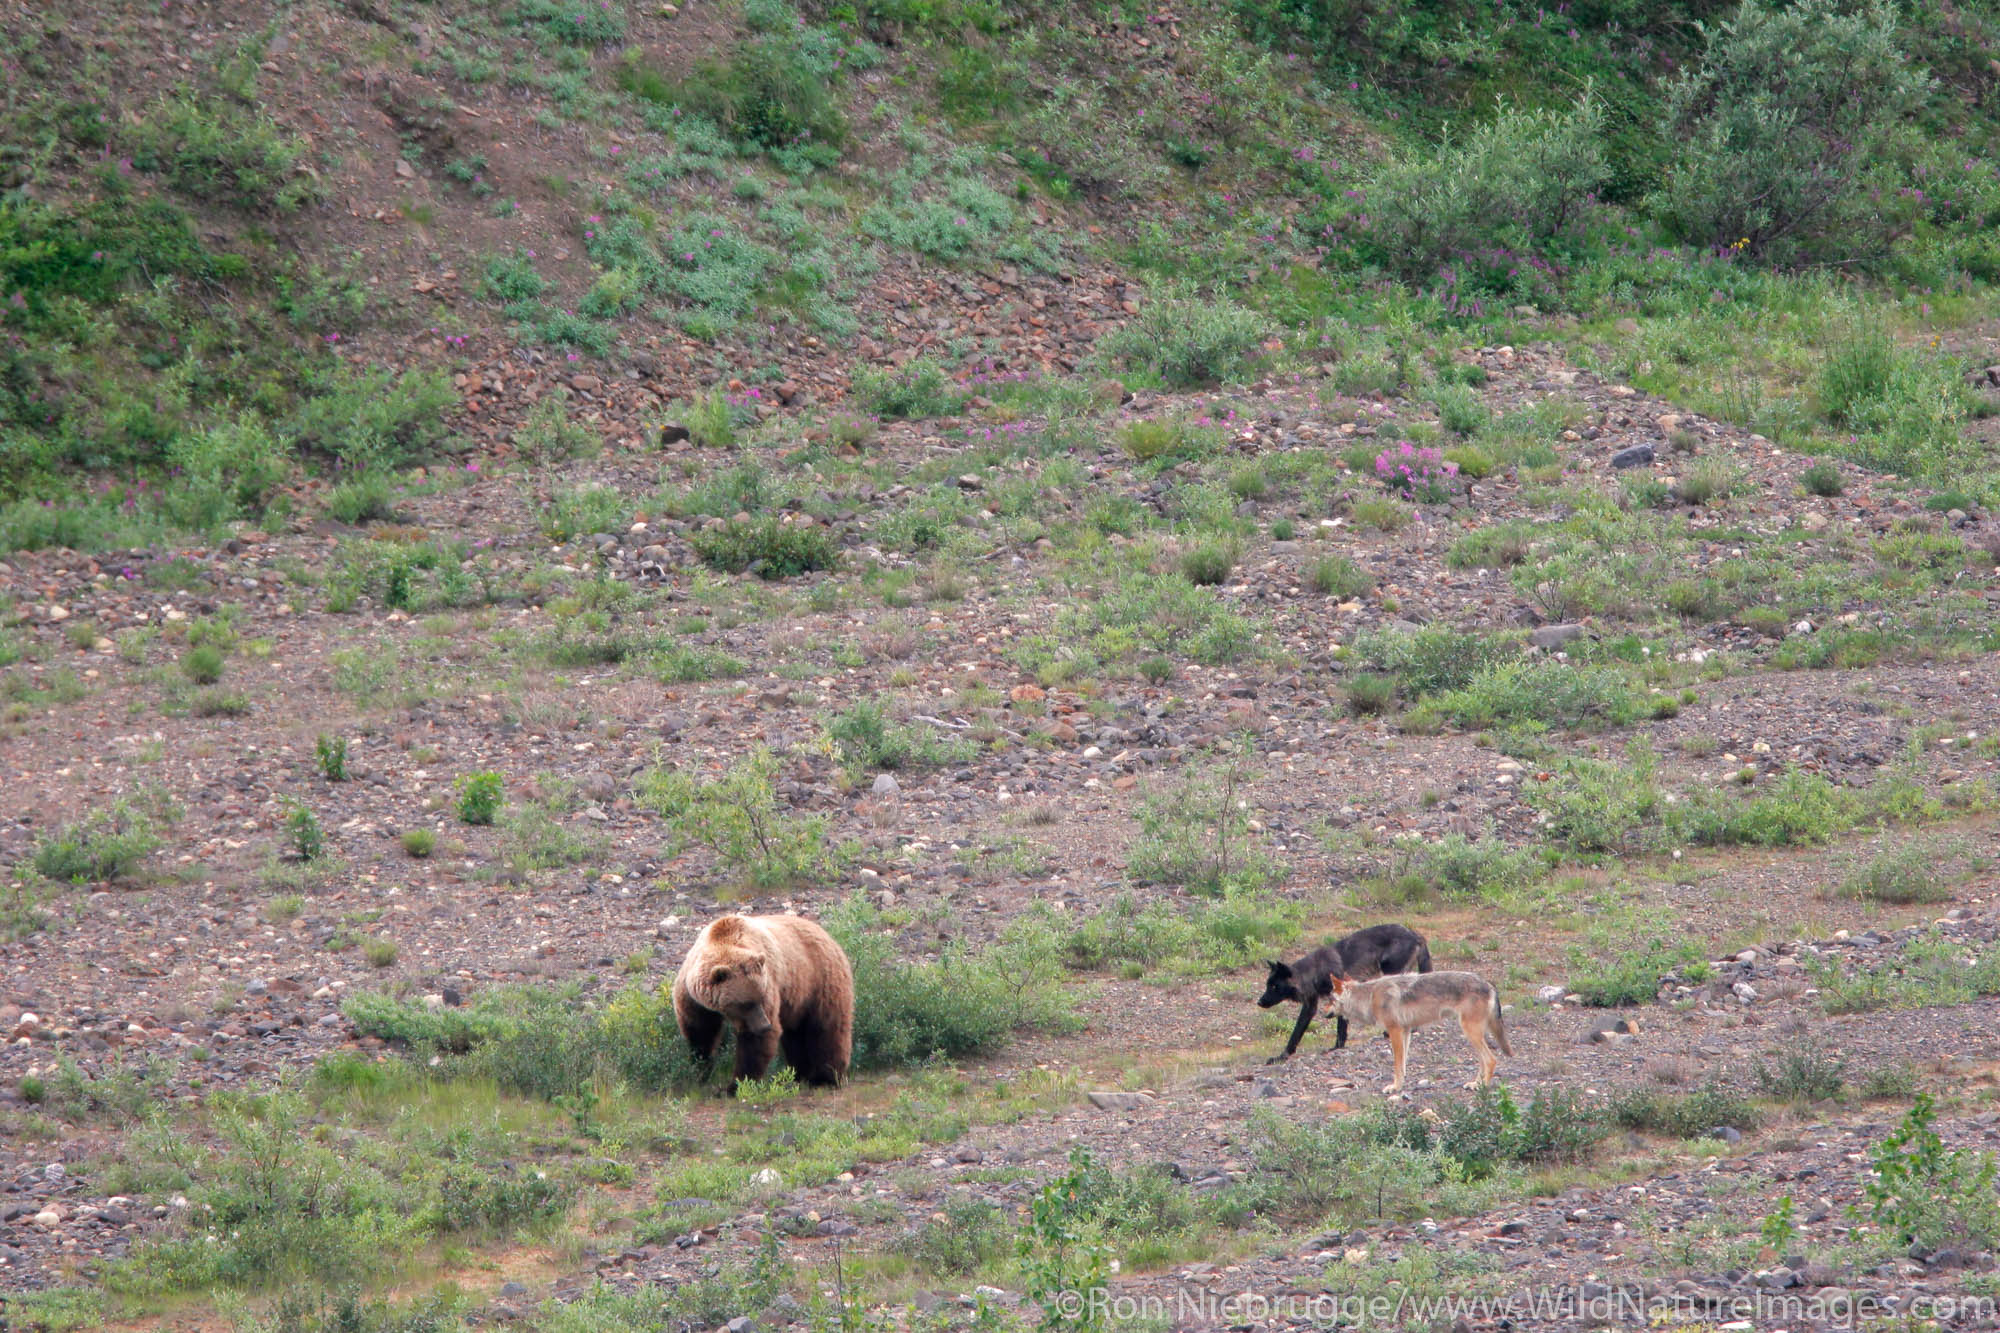 Wild wolves from the Grant Creek Pack and a grizzly bear, Denali National Park, Alaska.